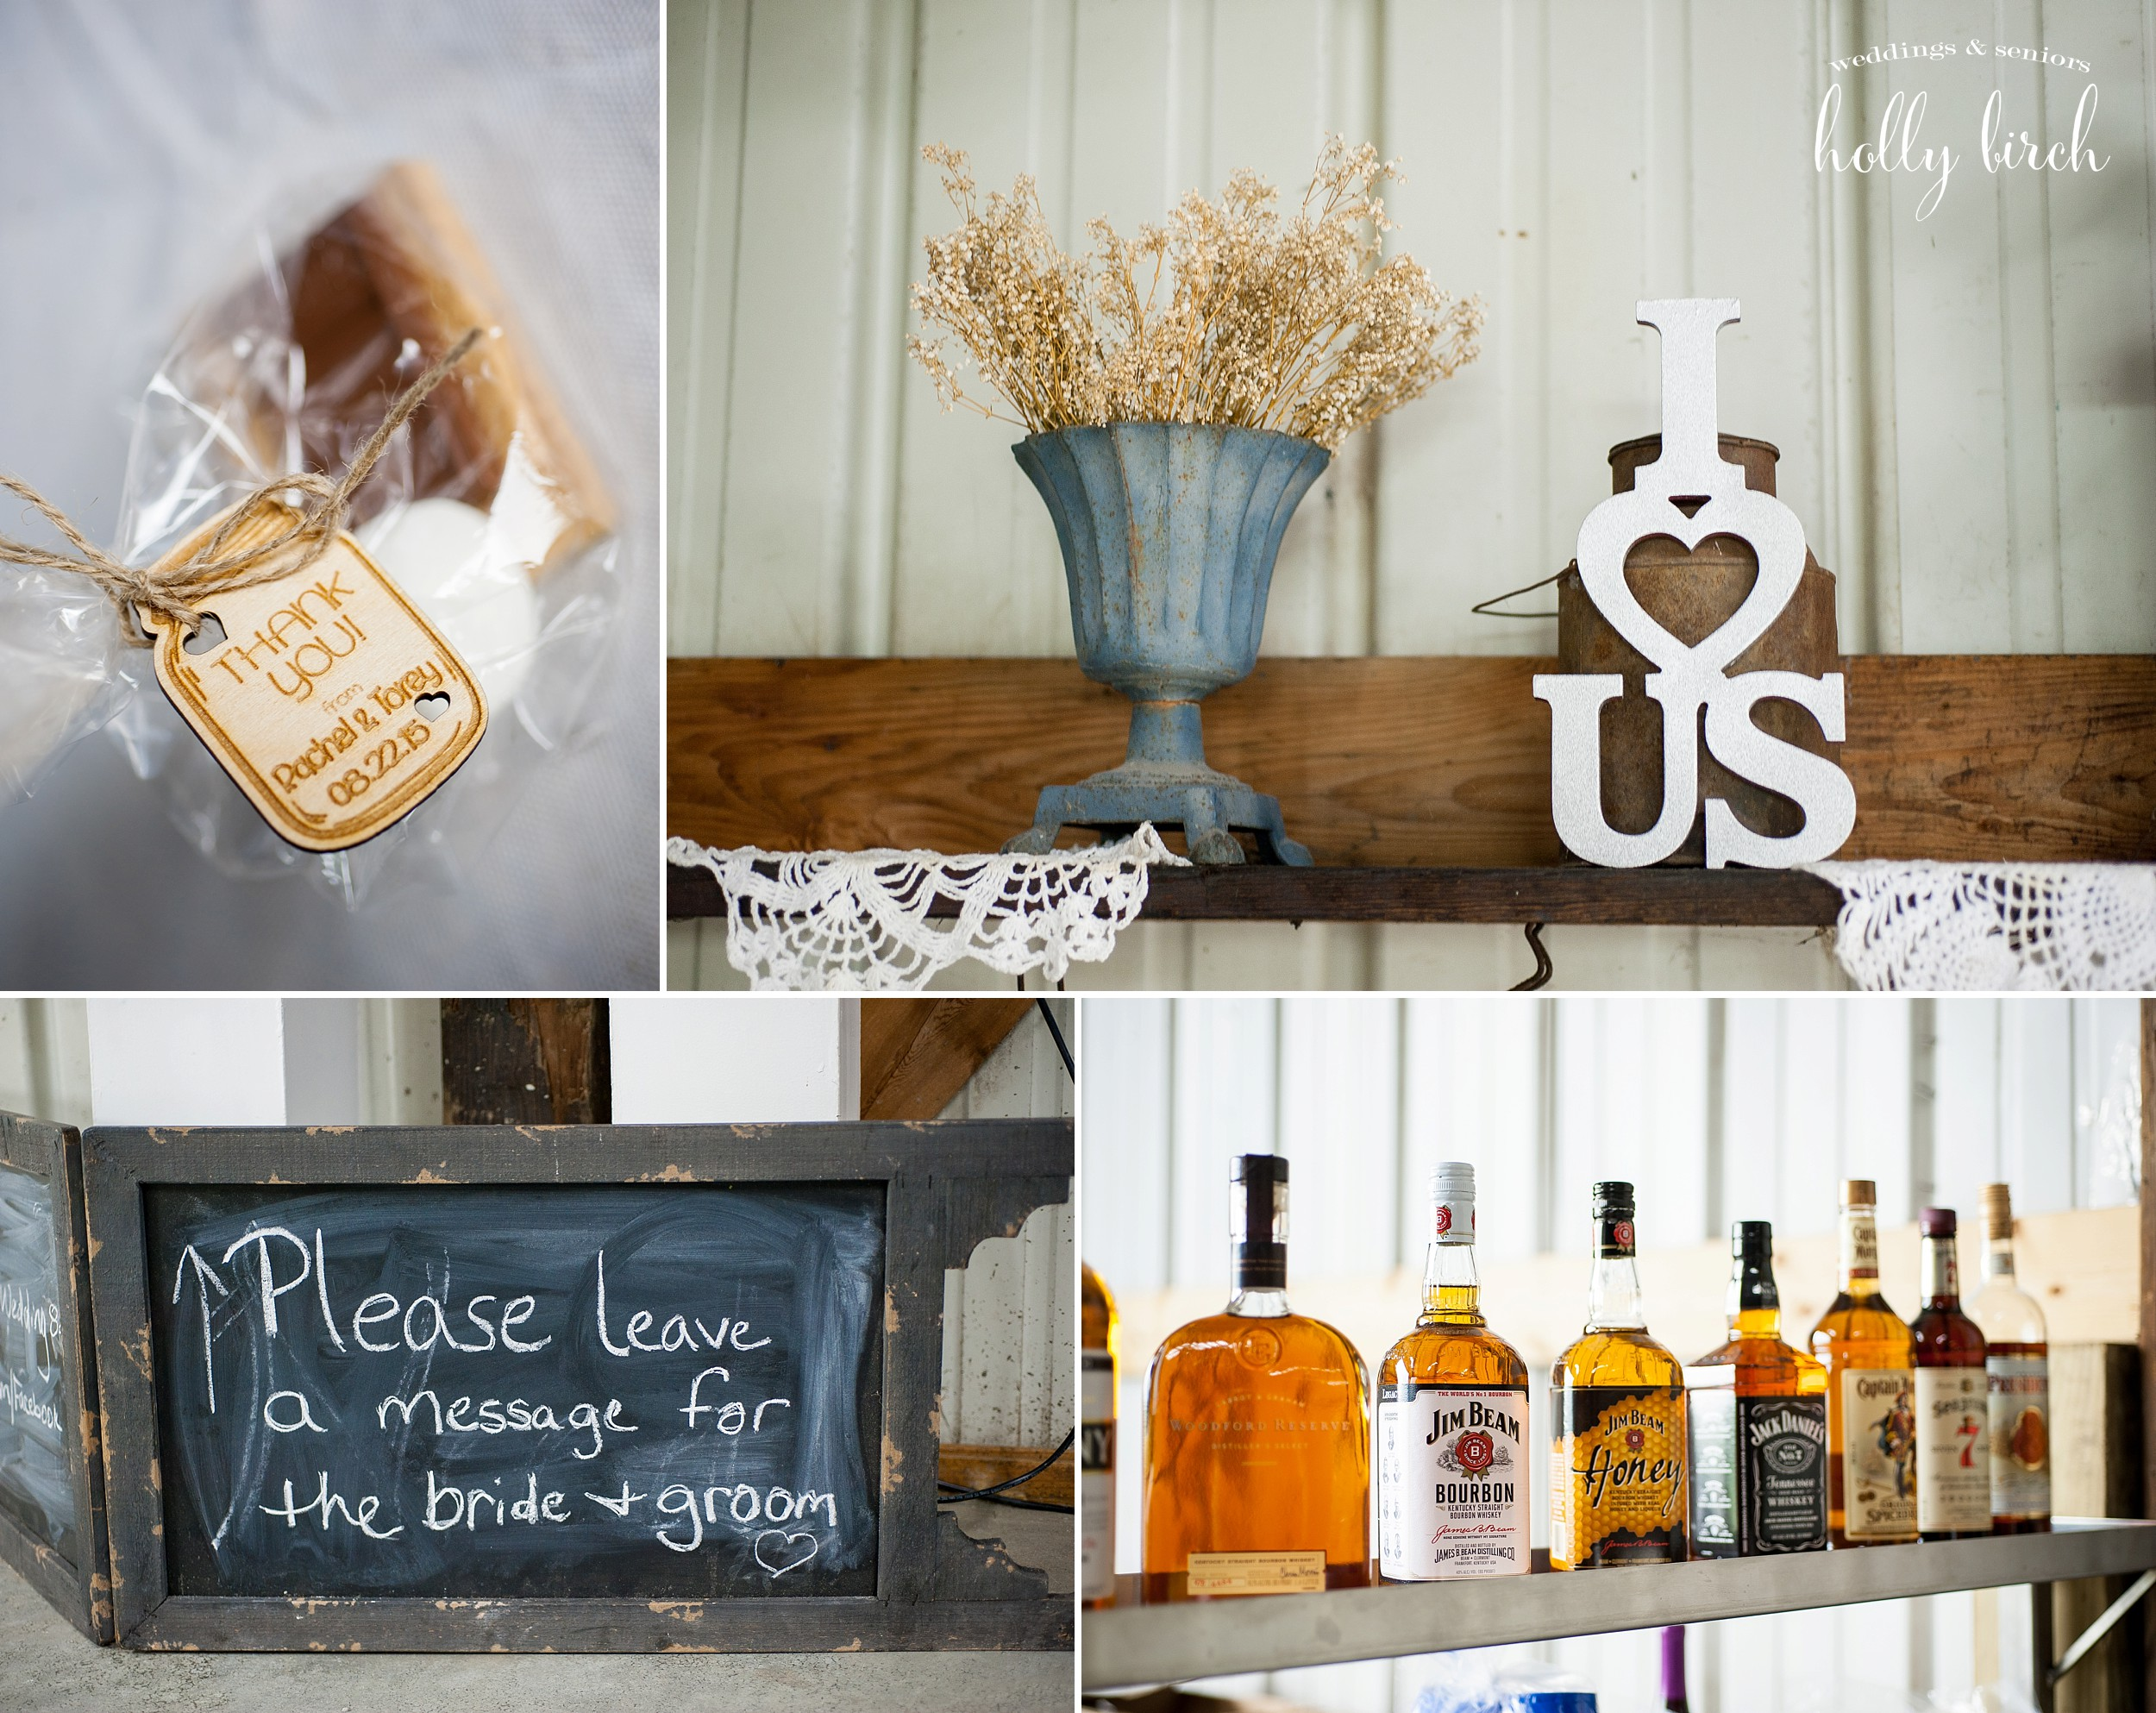 Rustic wedding signs and decor